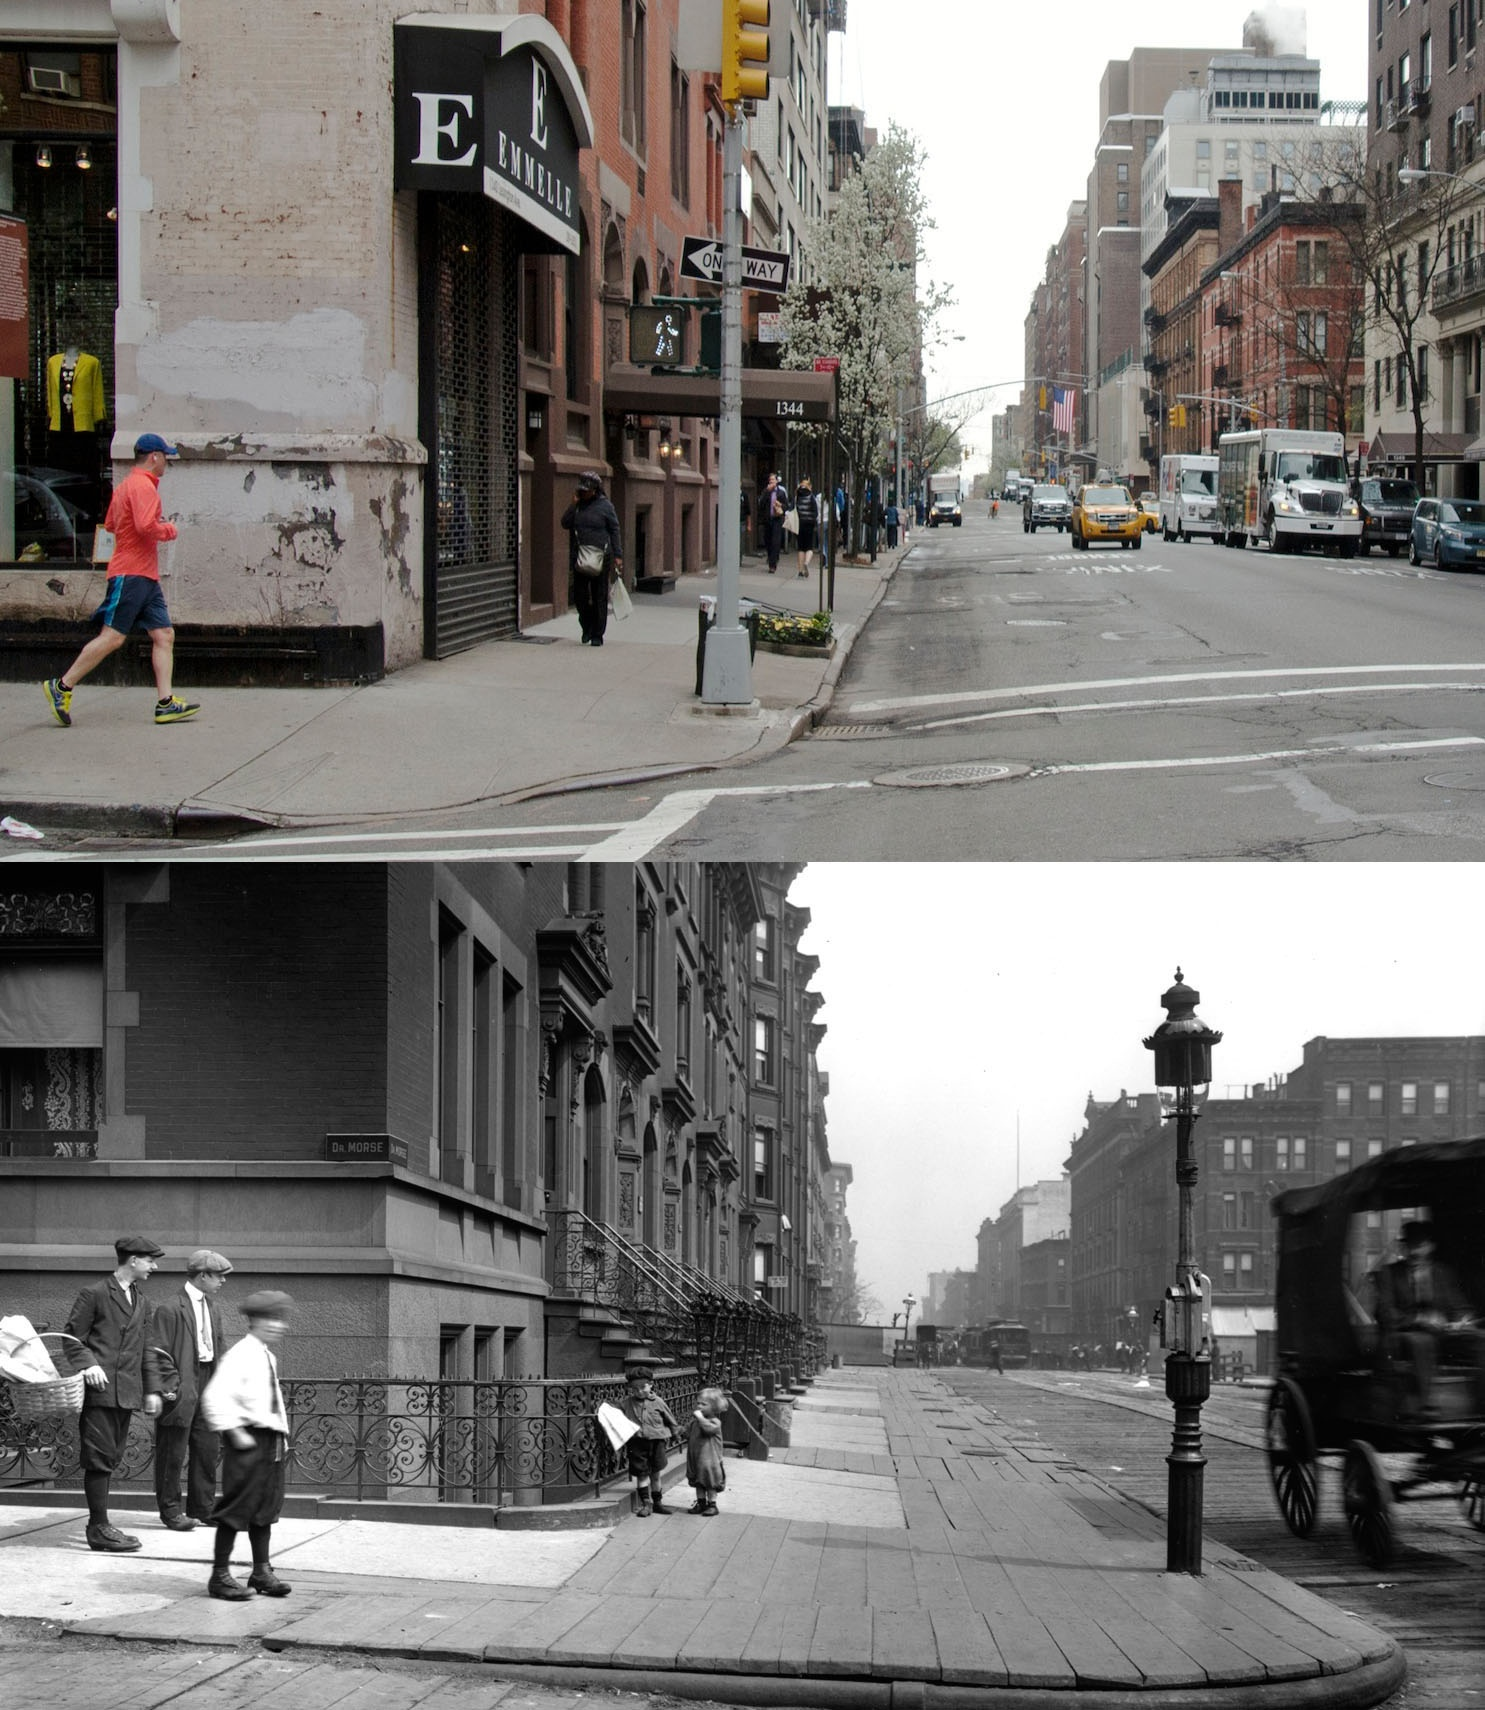 Lexington Avenue, New York, New York. Looking north from 89th Street in 1913 and 2013.